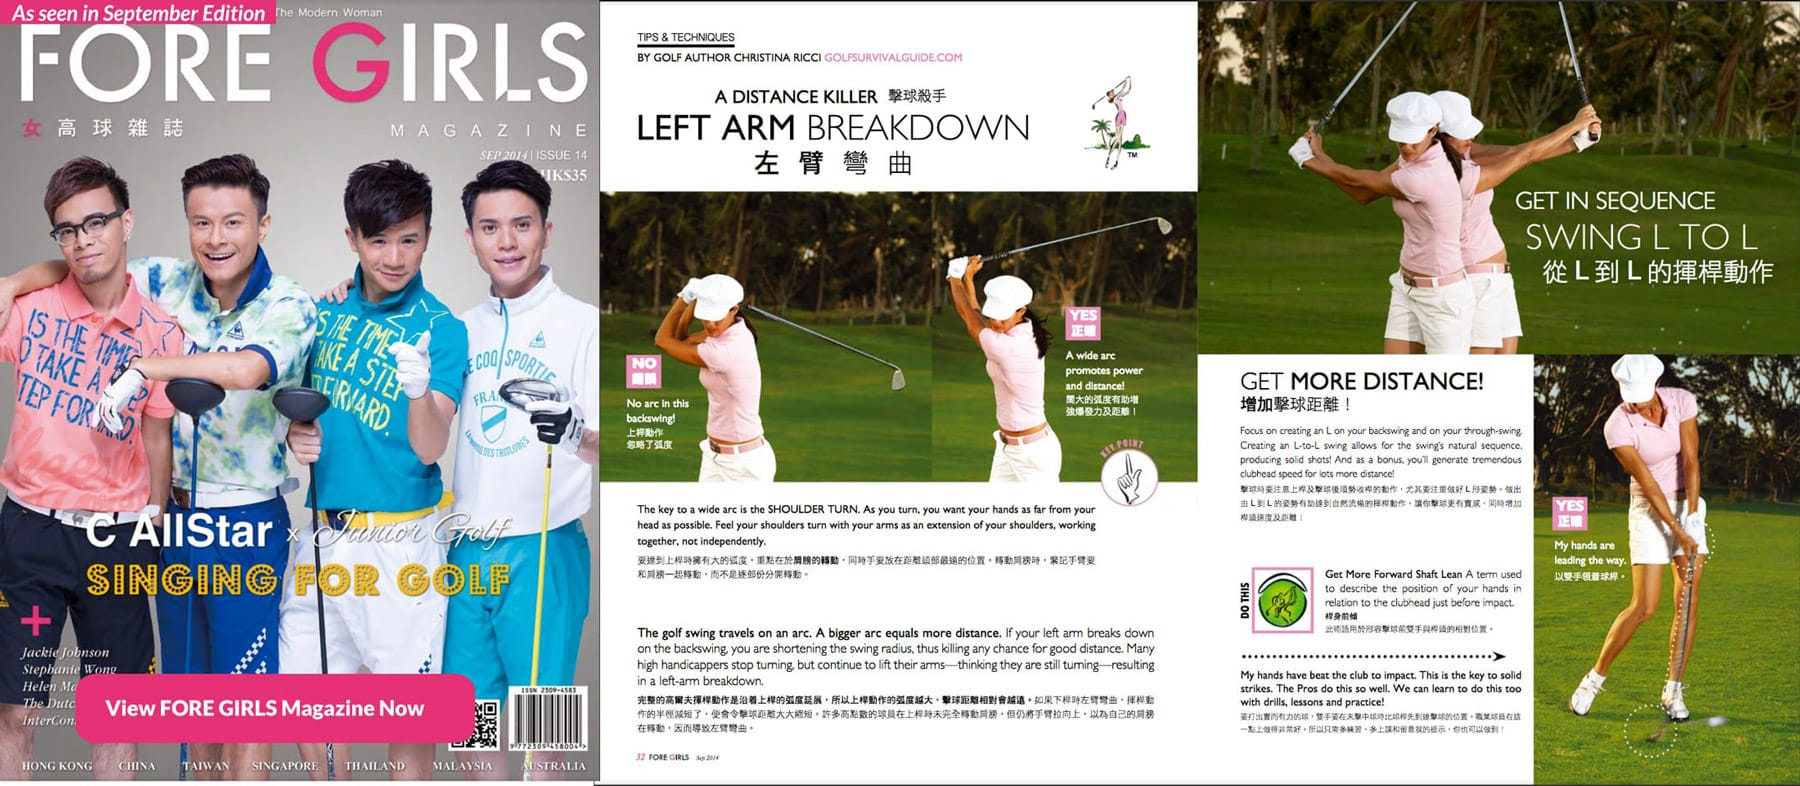 Fore-Girls-Sept2014